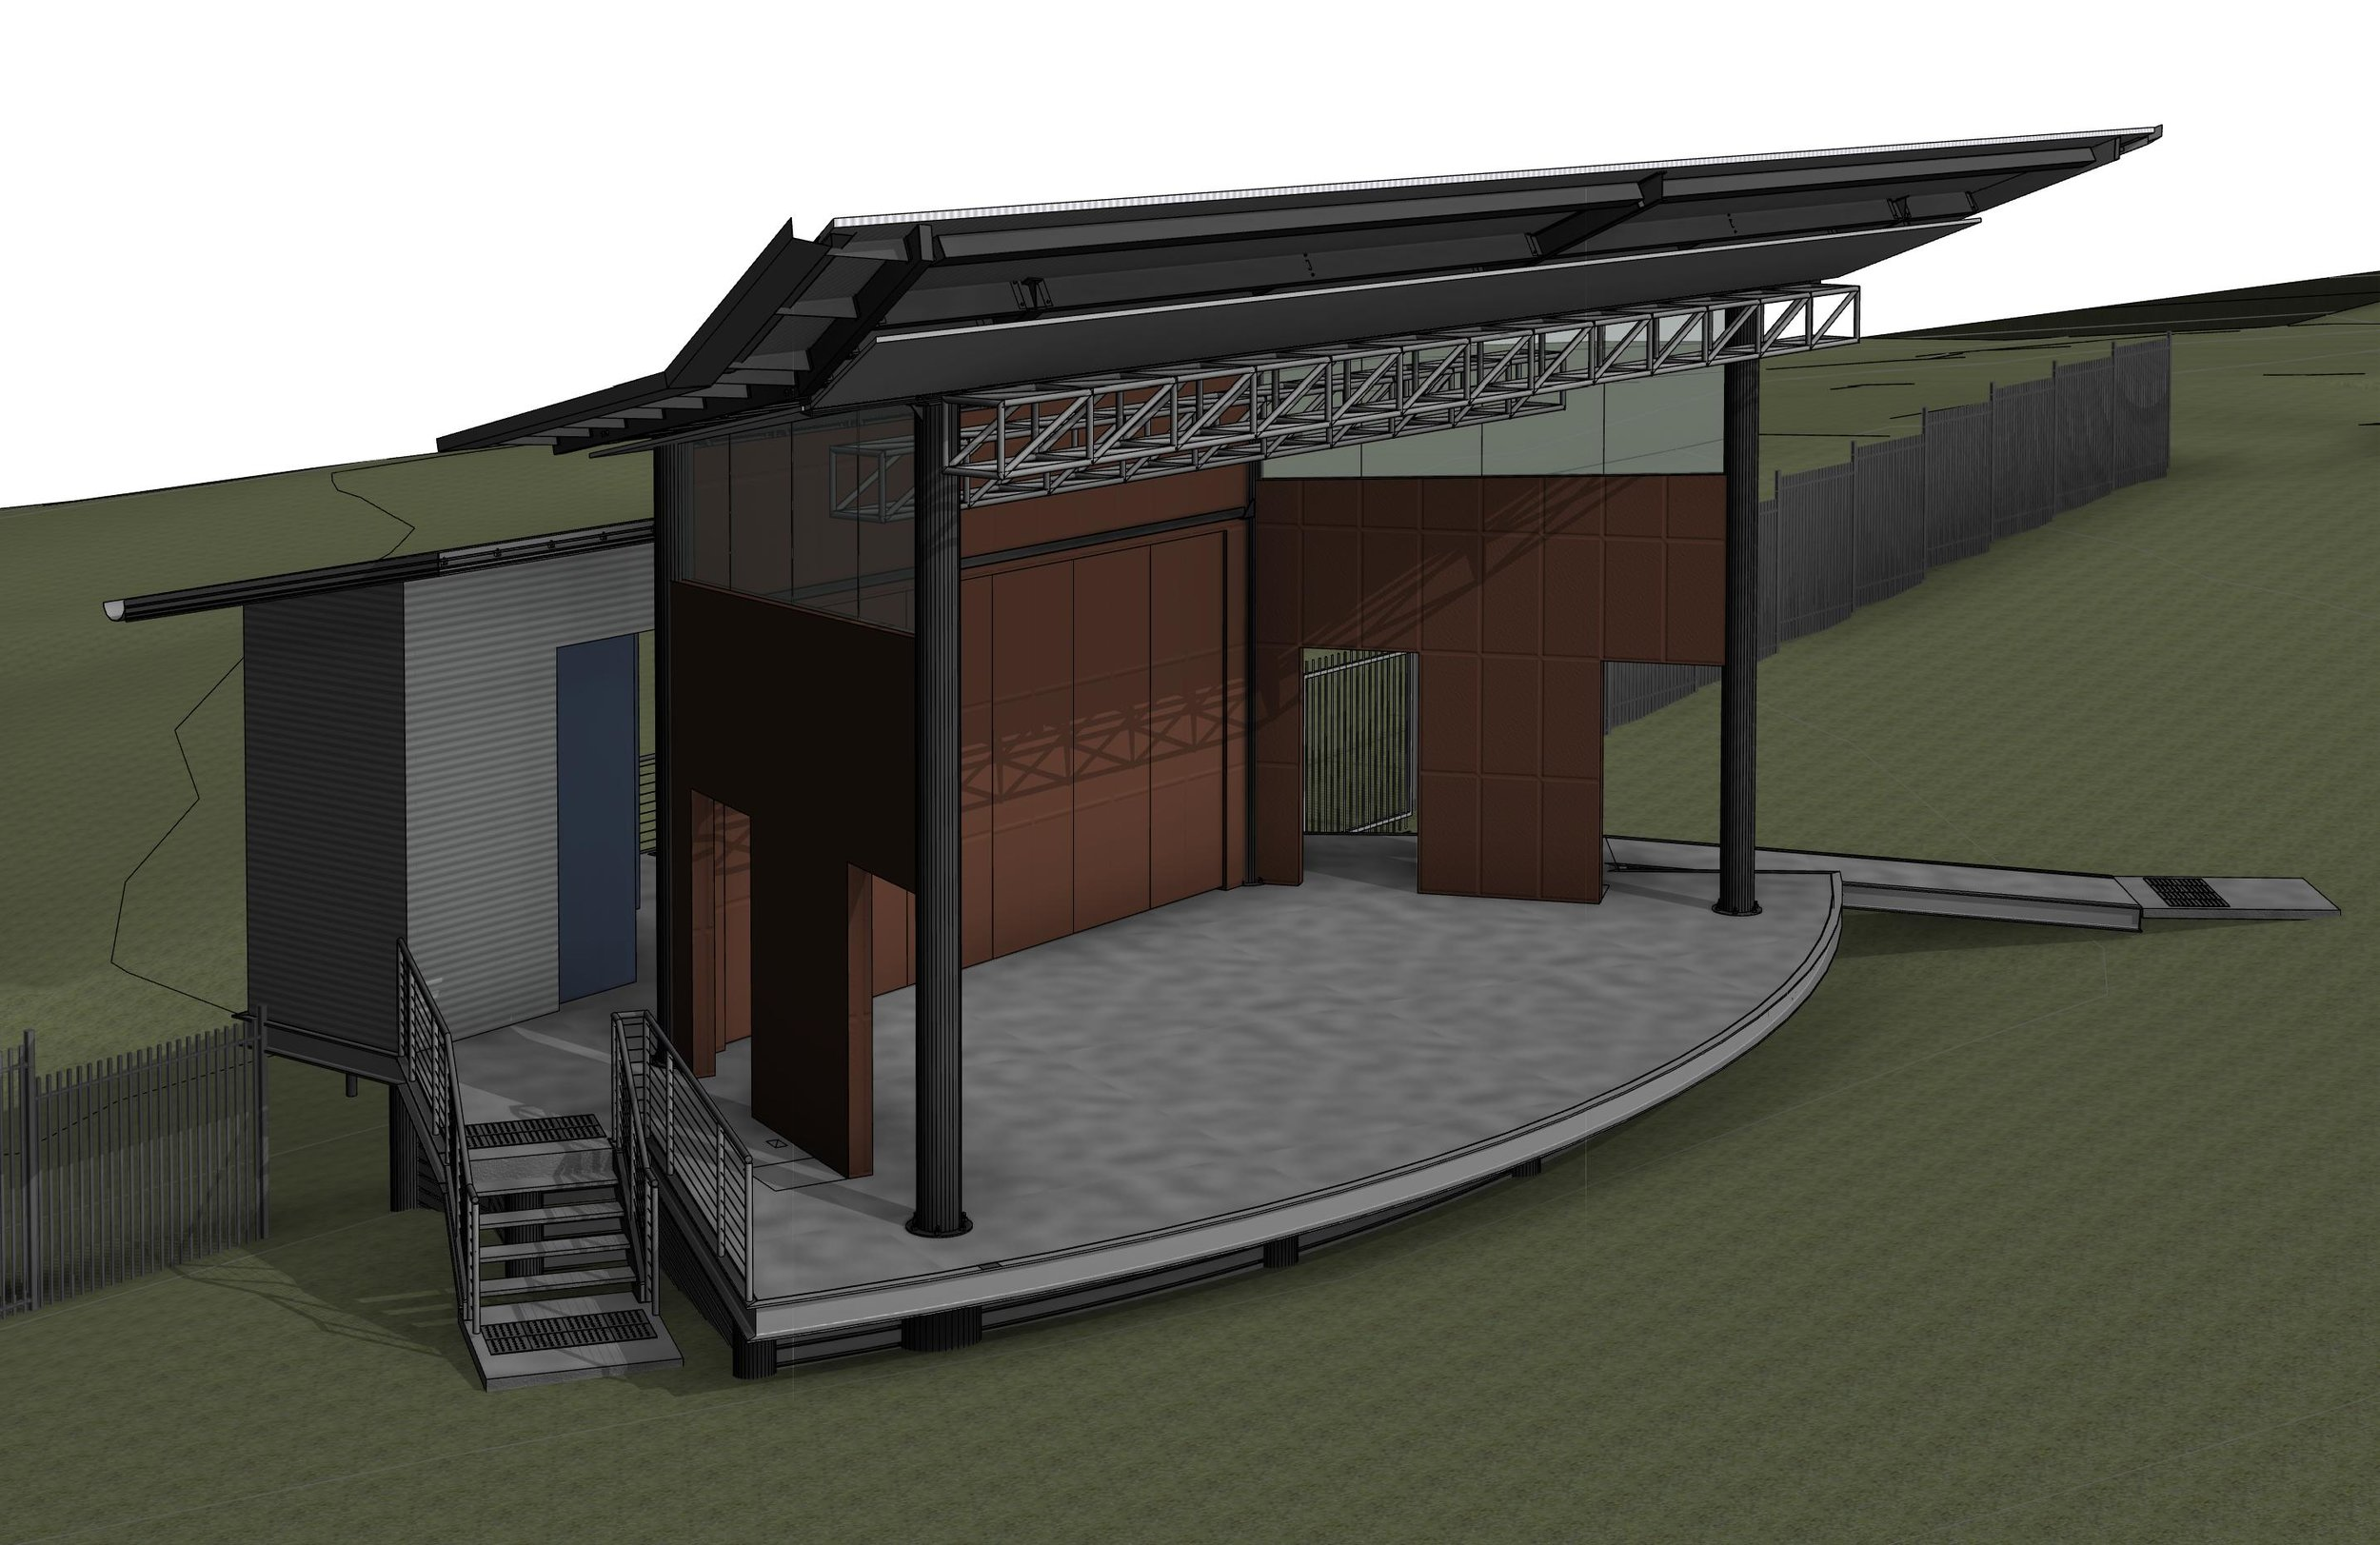 13055 - BELLA VISTA FARM STAGE - REVISED SCHEME 04_1.0.jpg